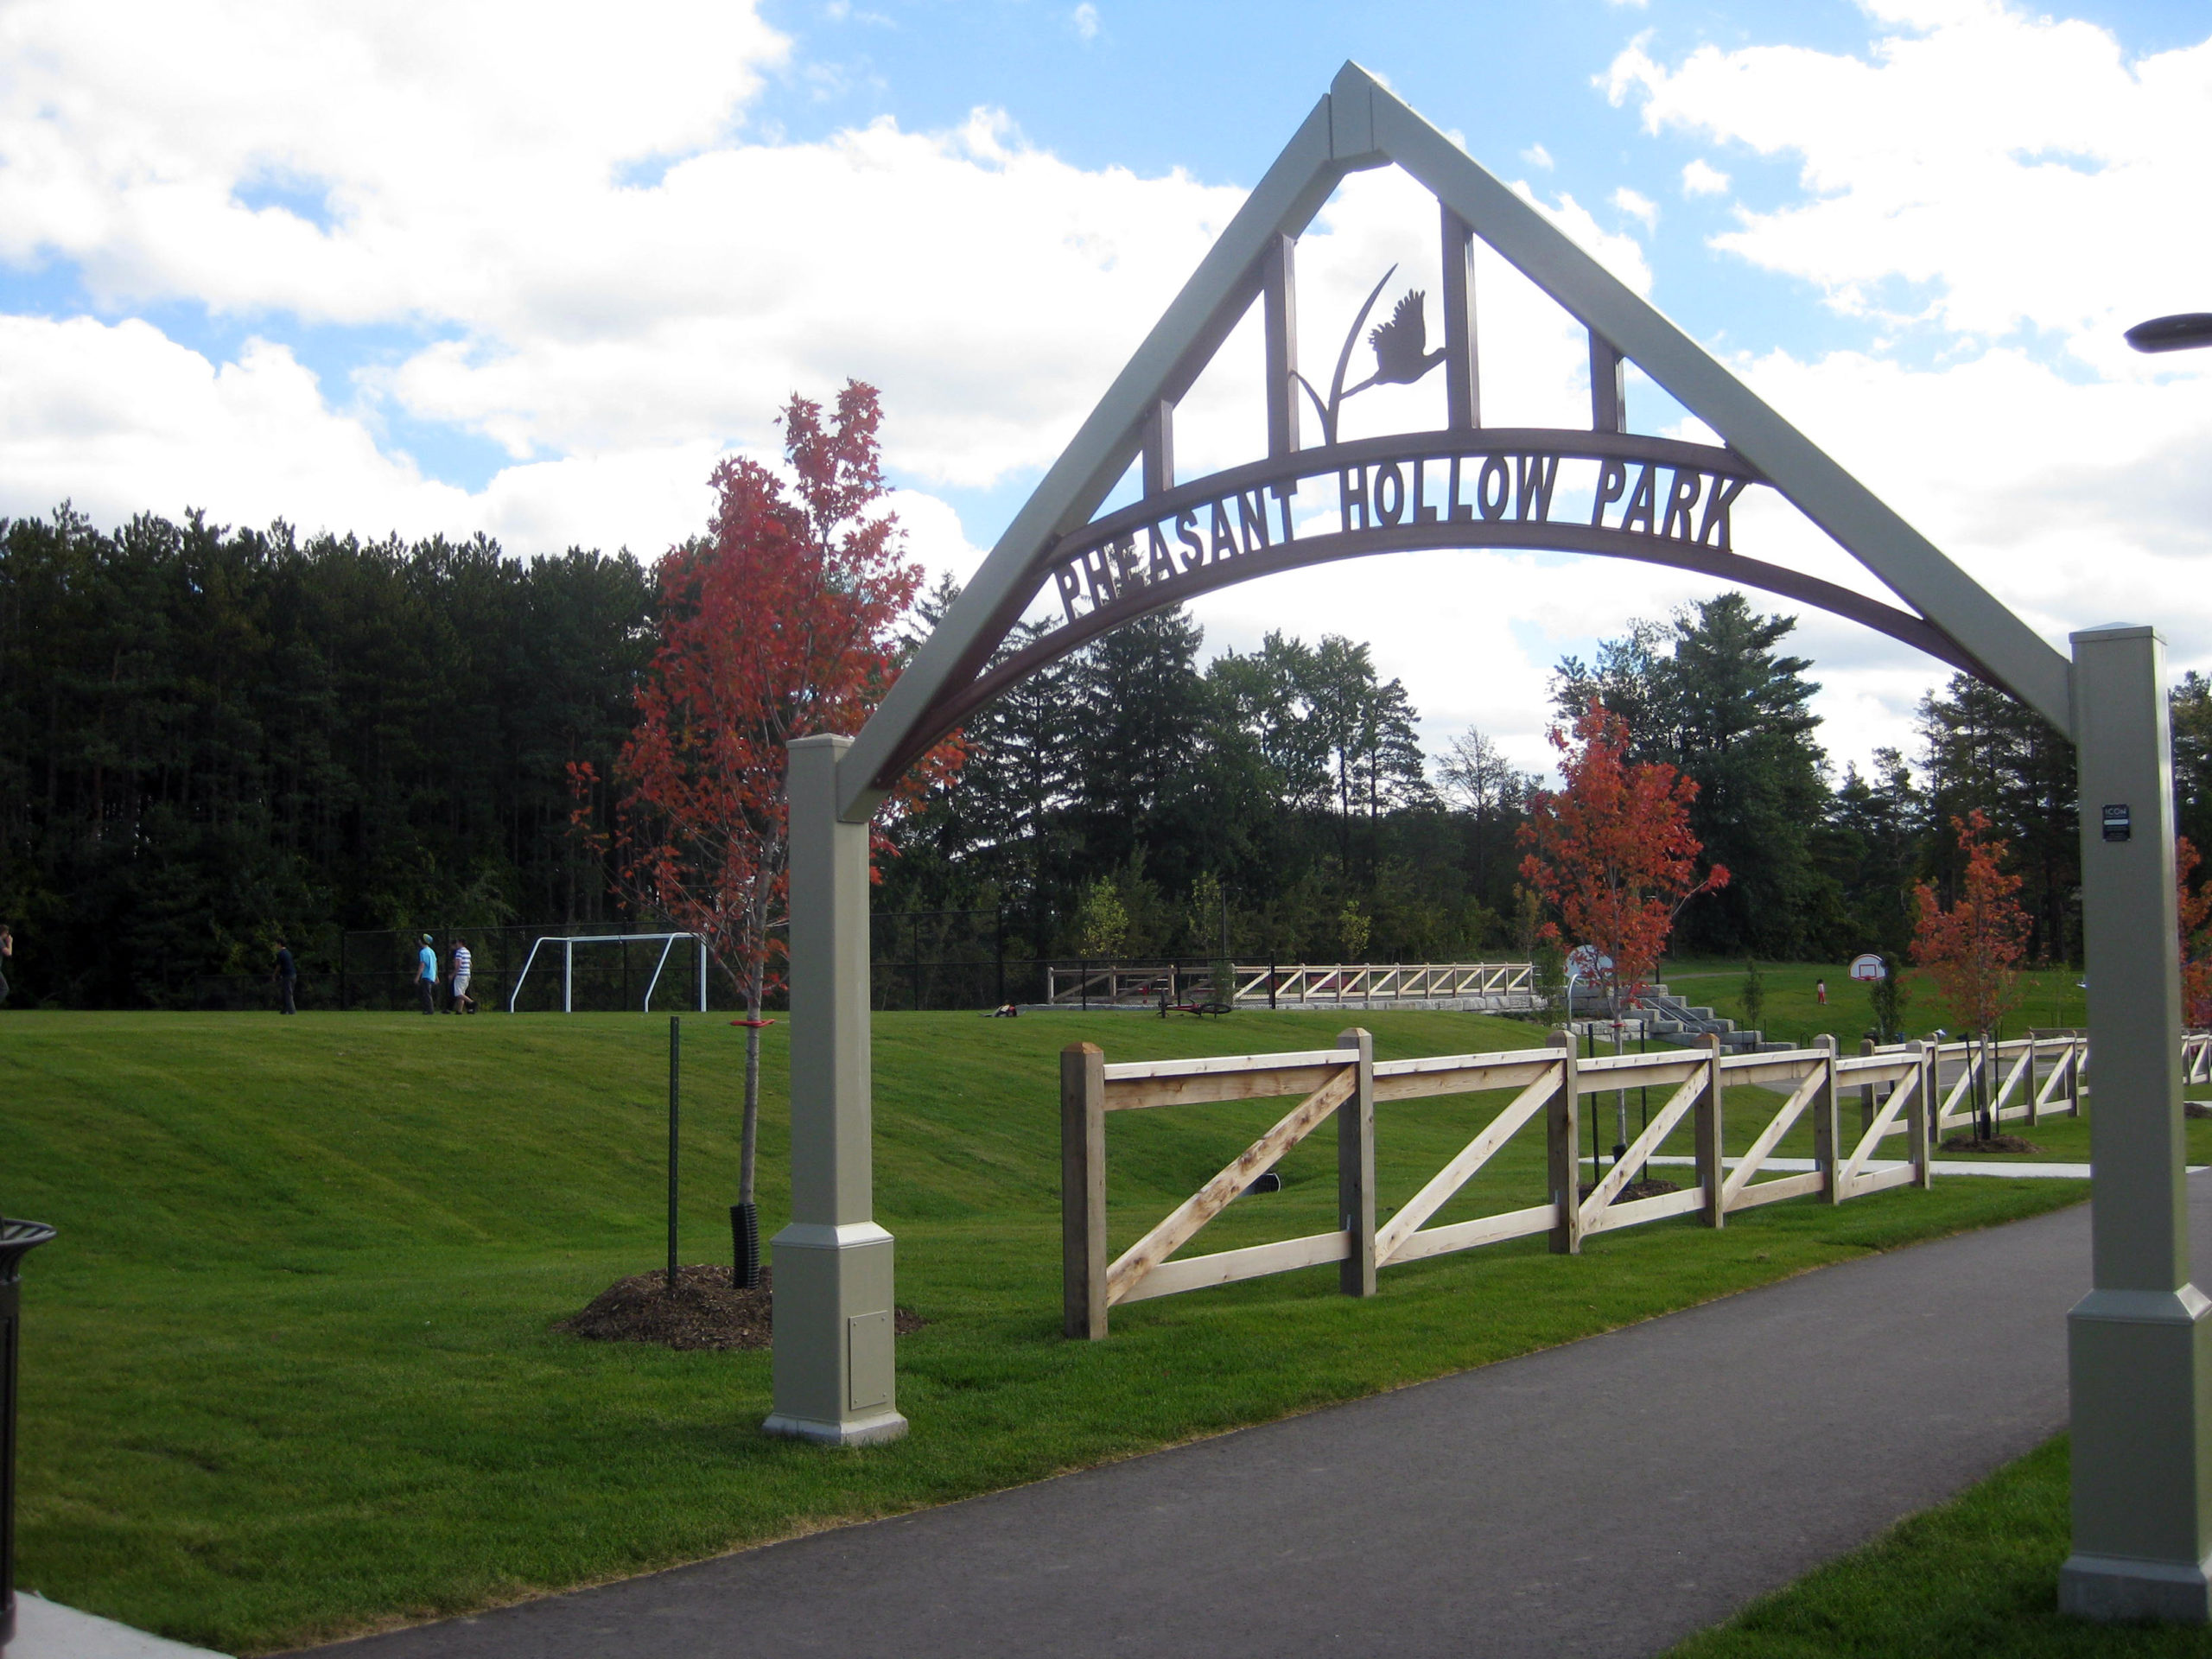 Entrance to the park.